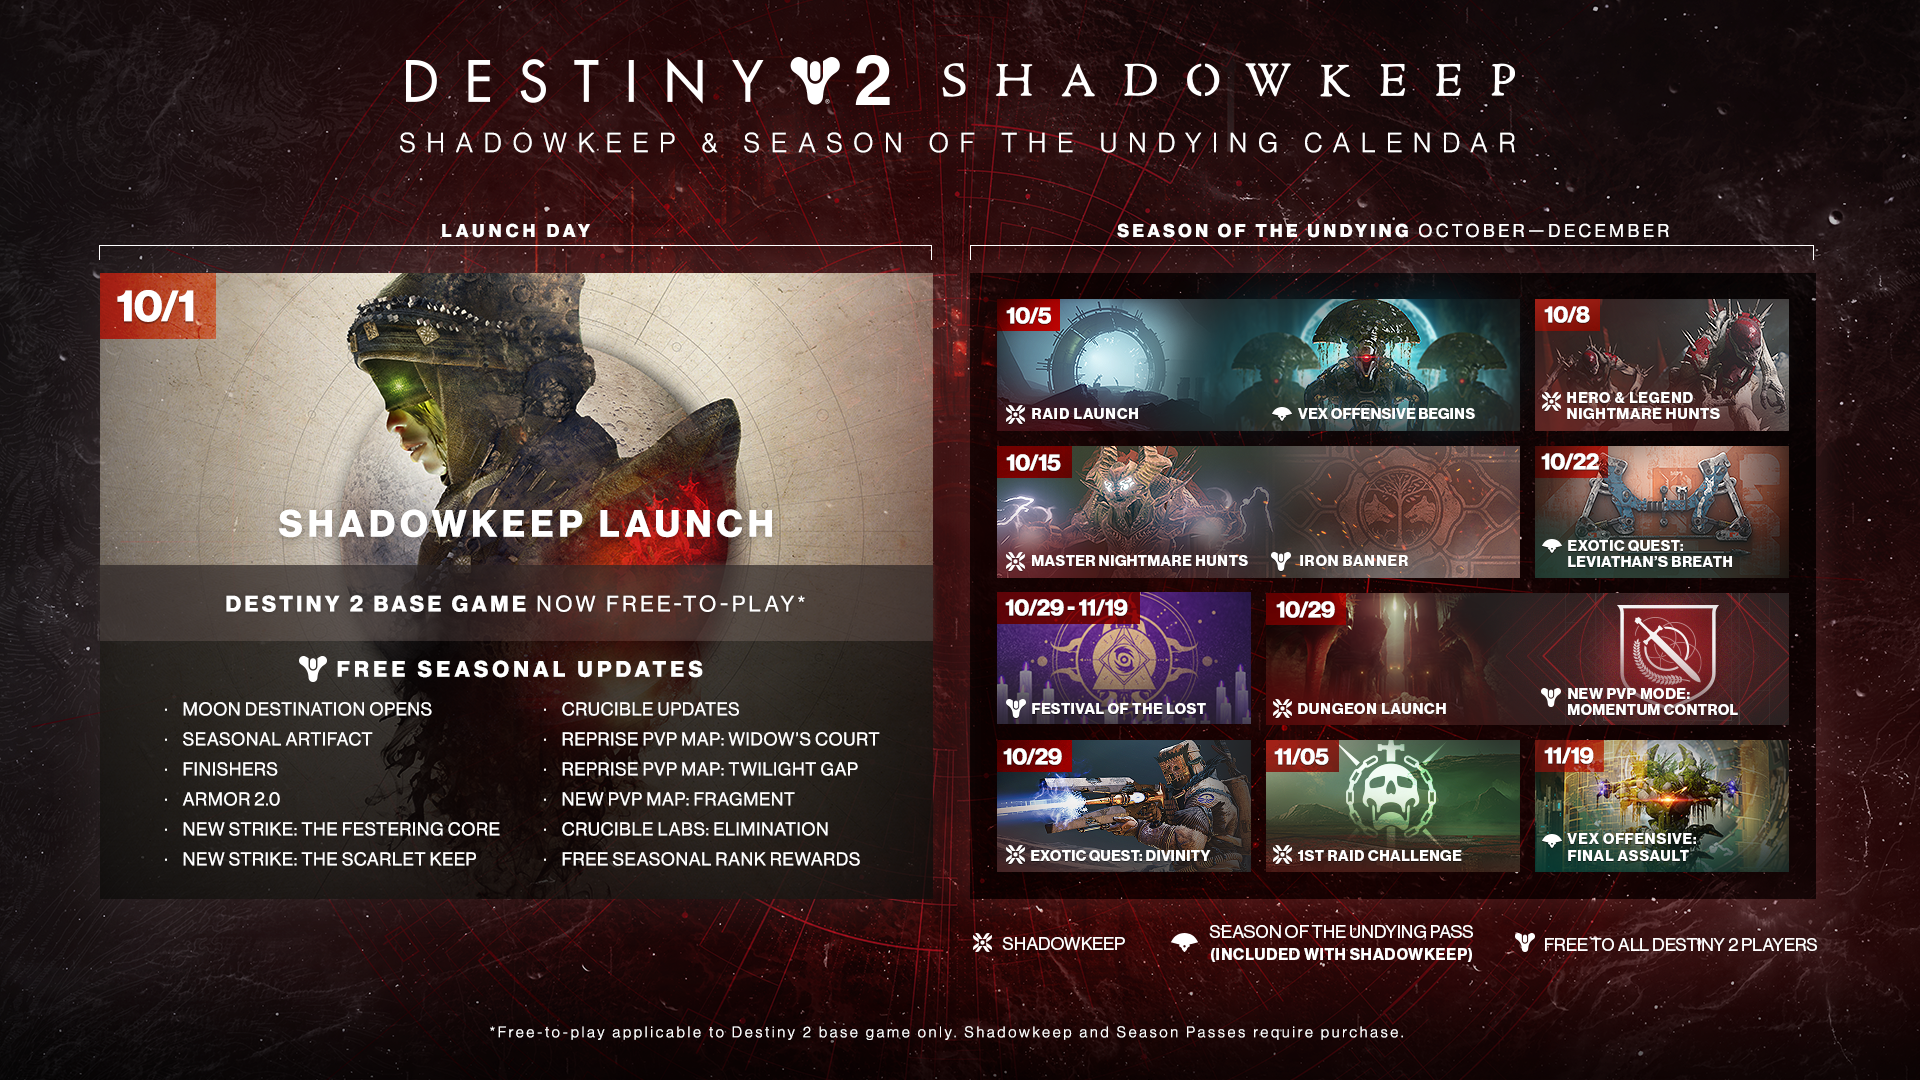 Destiny 2 shadowkeep season of the undying roadmap